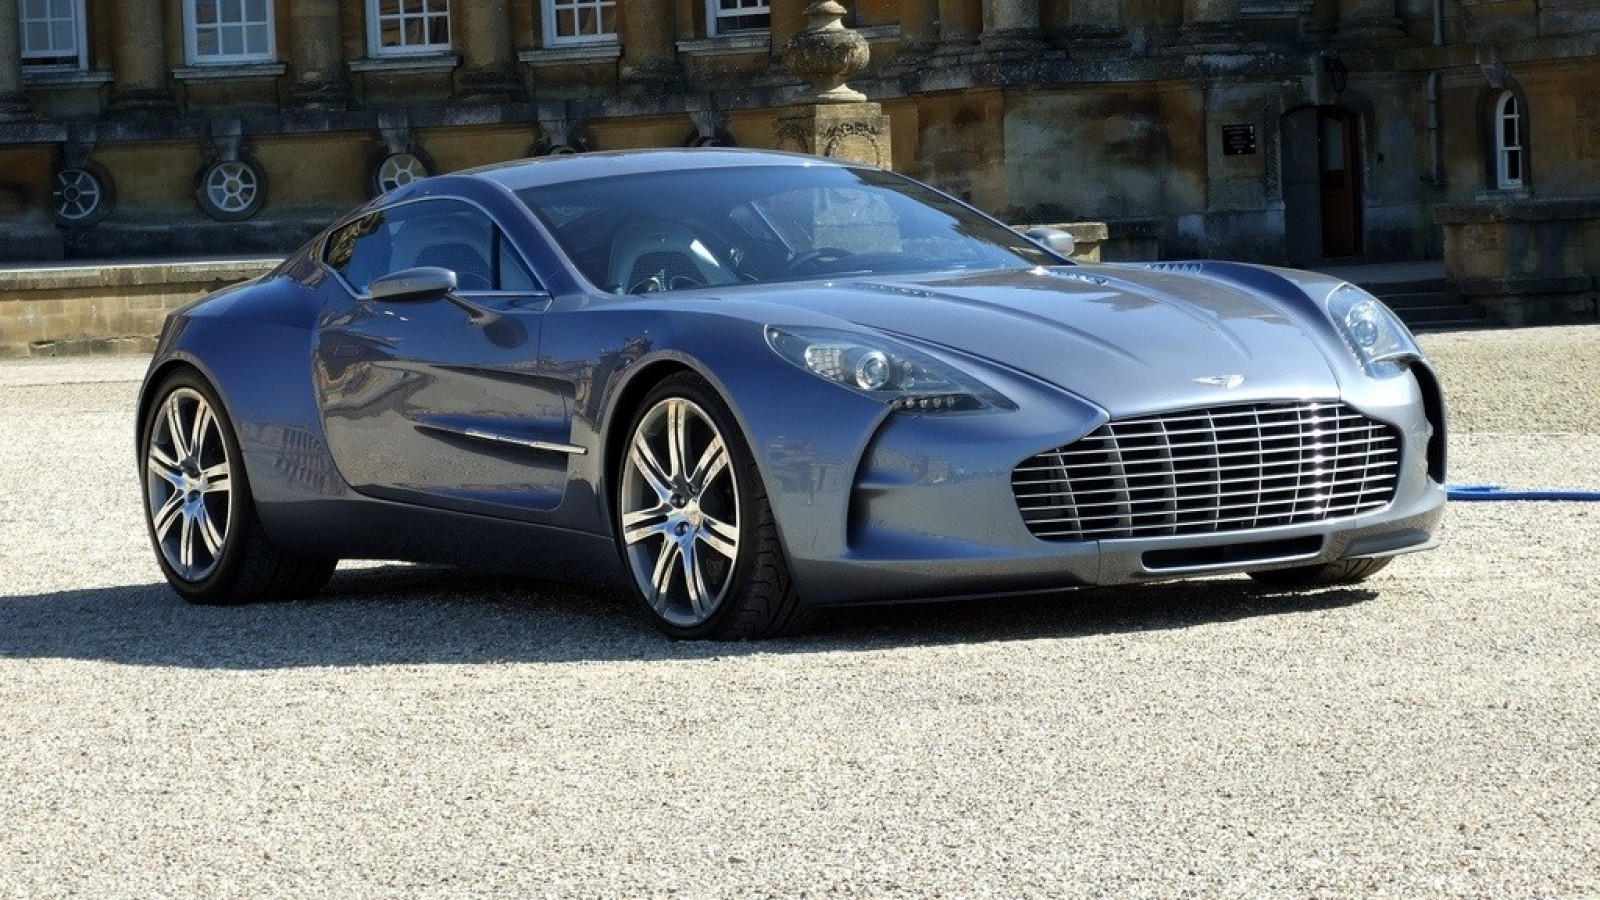 aston martin one 77 wallpaper Vehicle Pictures 1600x900